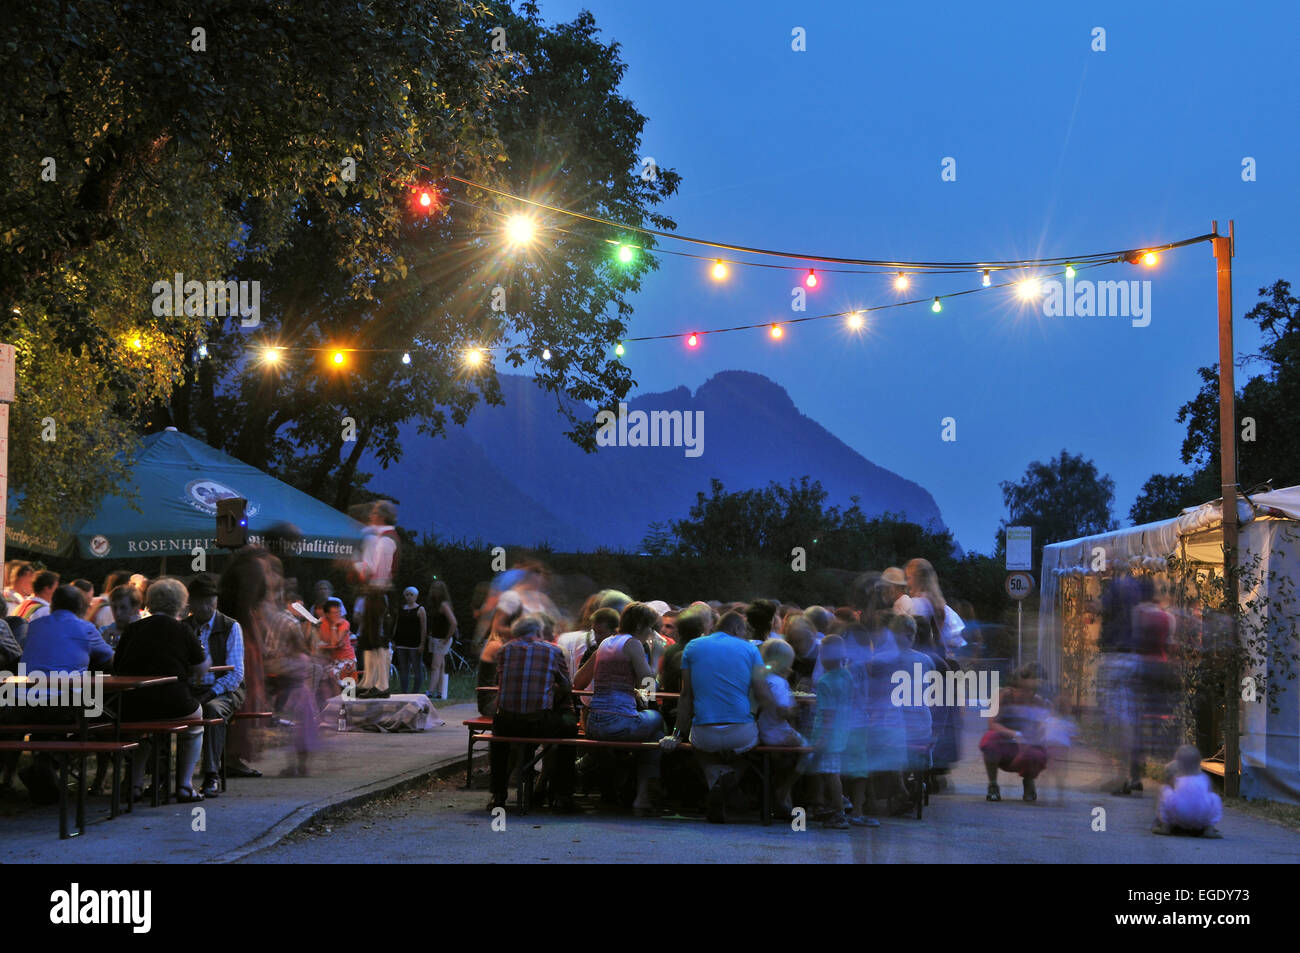 Fête dans un village le long de la vallée de l'Inn, Bavaria, Germany, Europe Photo Stock